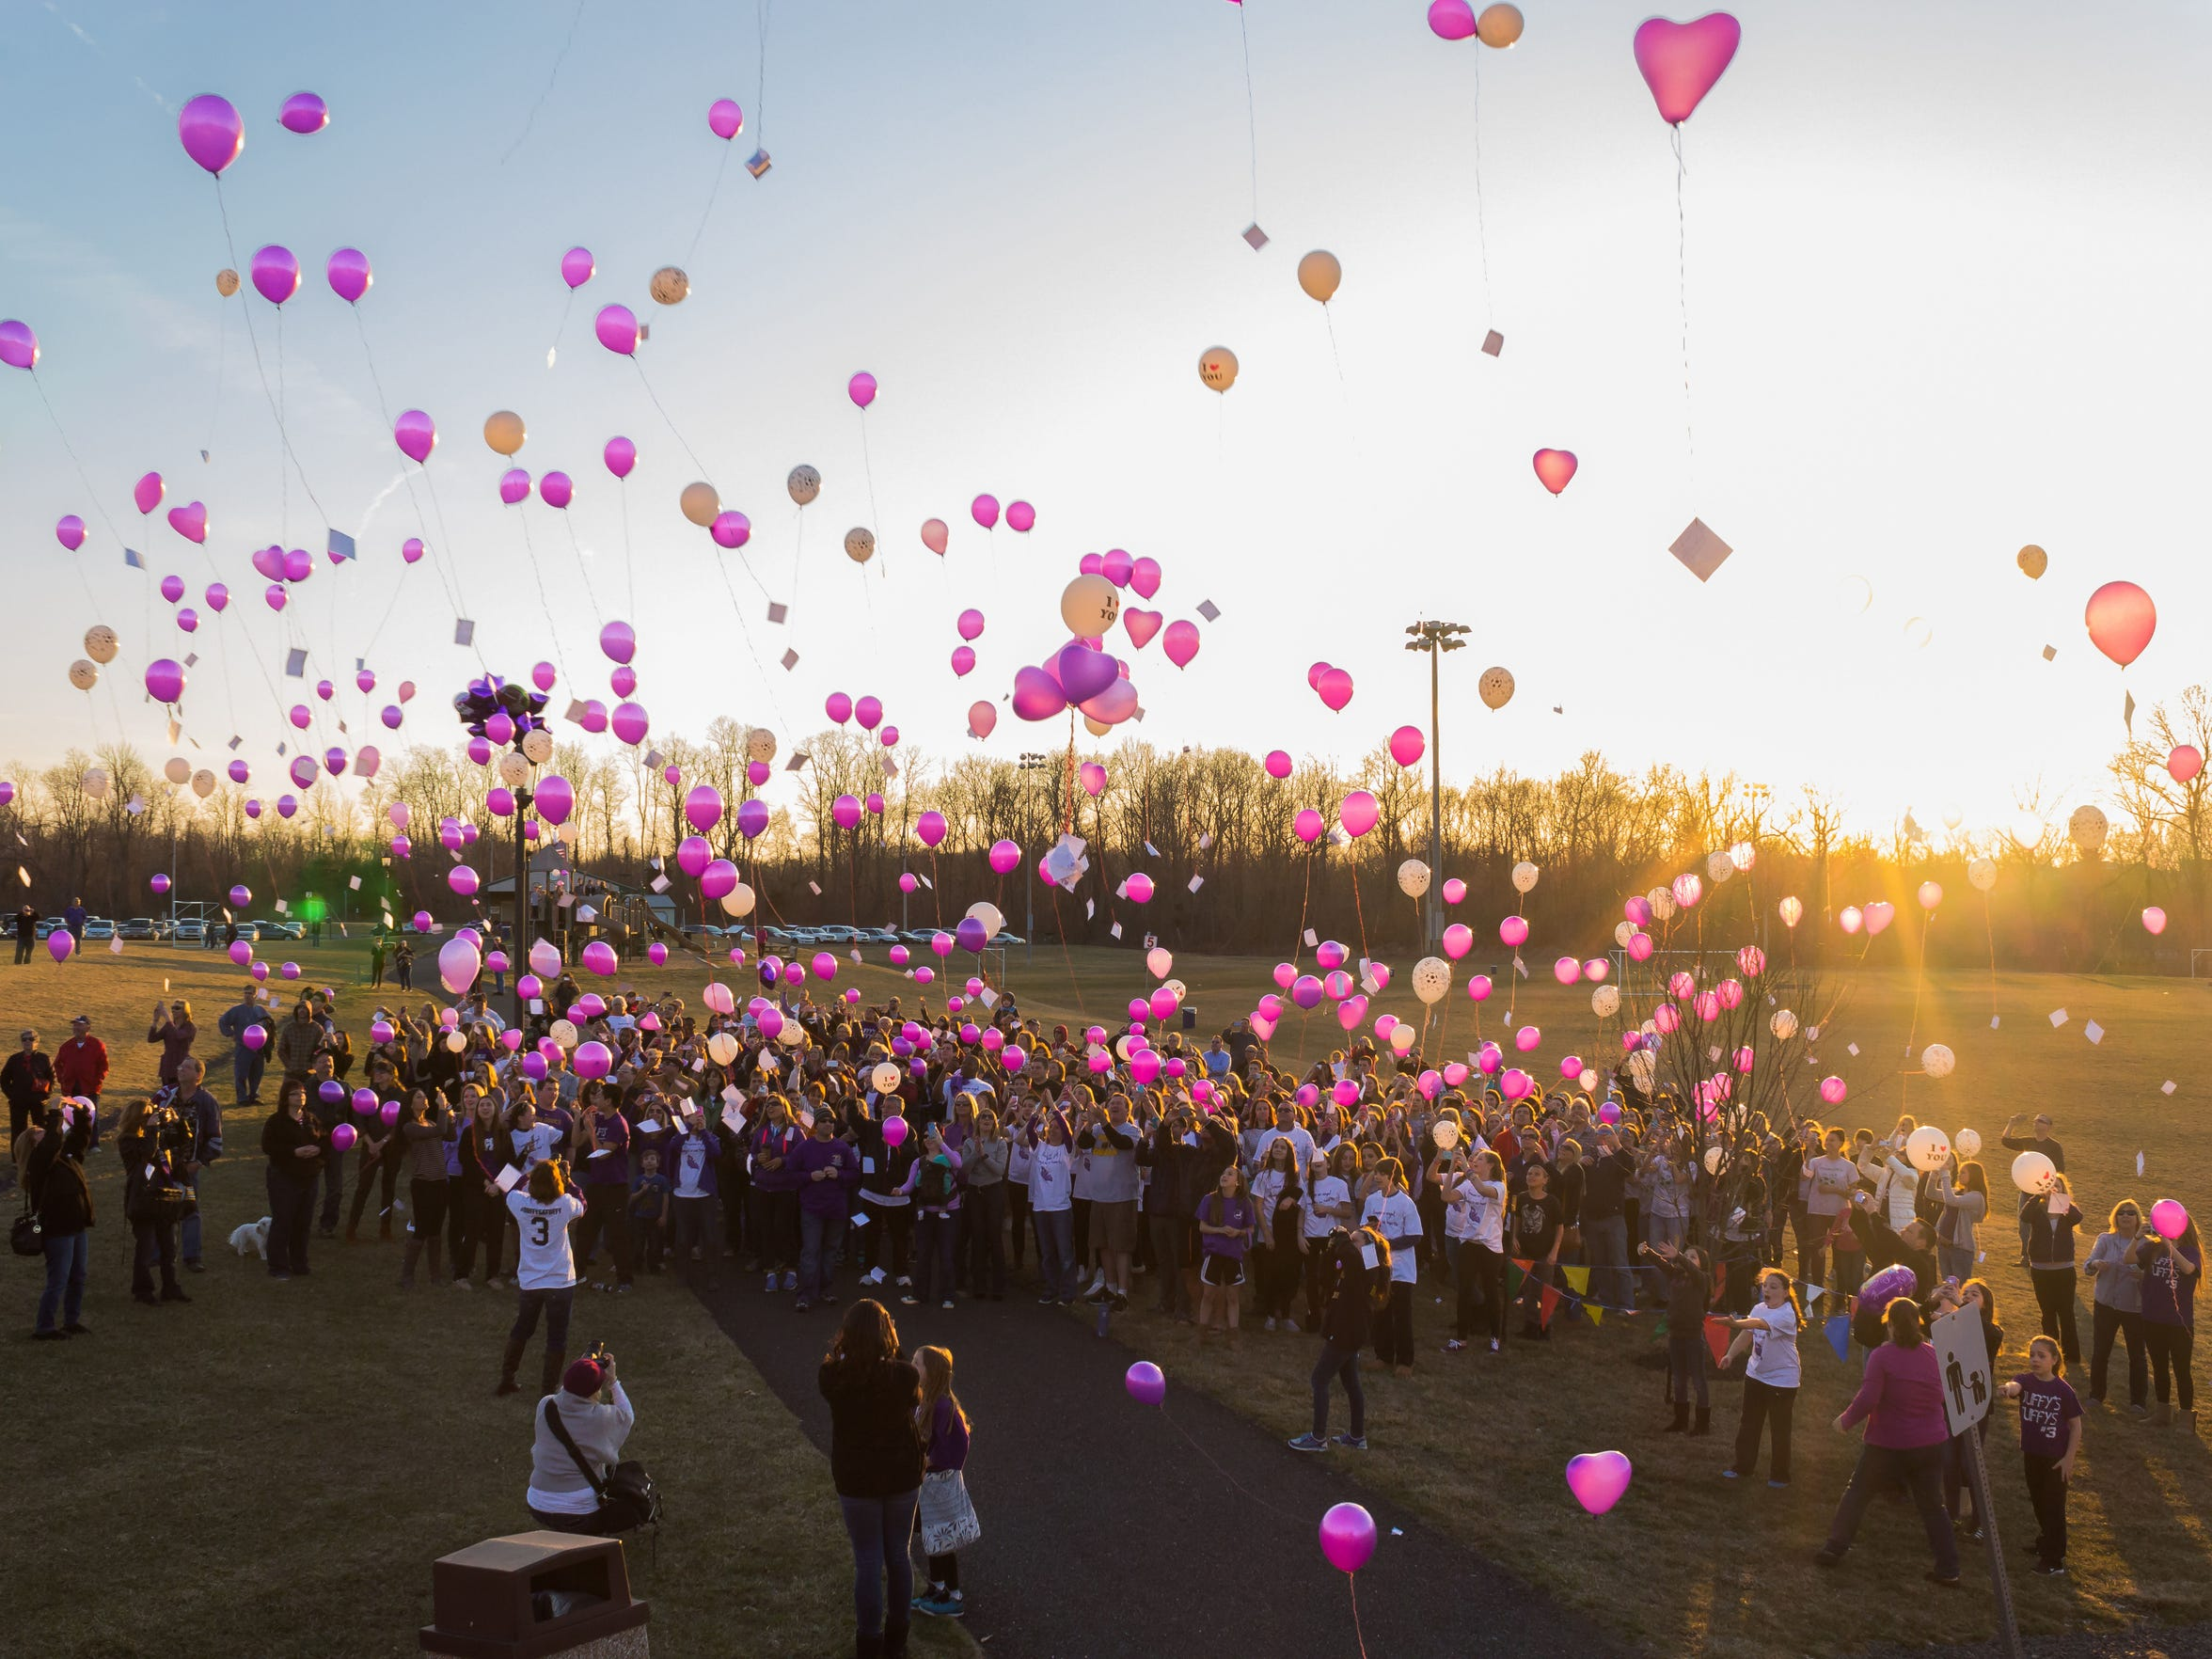 A balloon release took place March 22 to celebrate